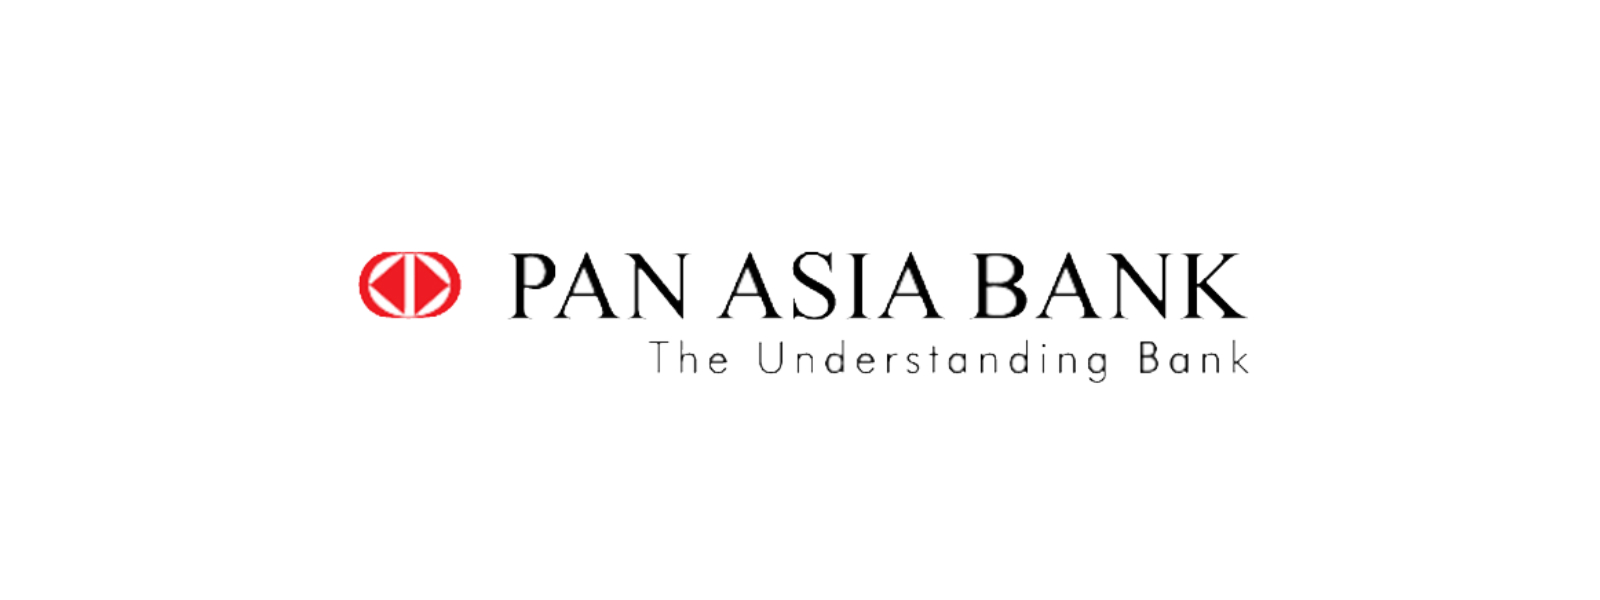 Suspension on PABC Primary Dealer unit, extended